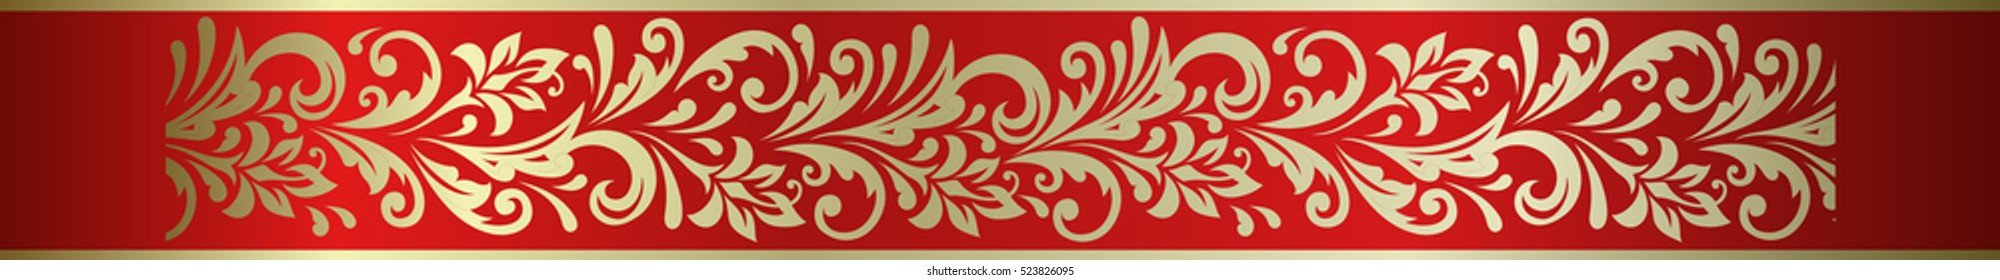 Ornate vector floral decorative element frame border in Russian hohloma style.